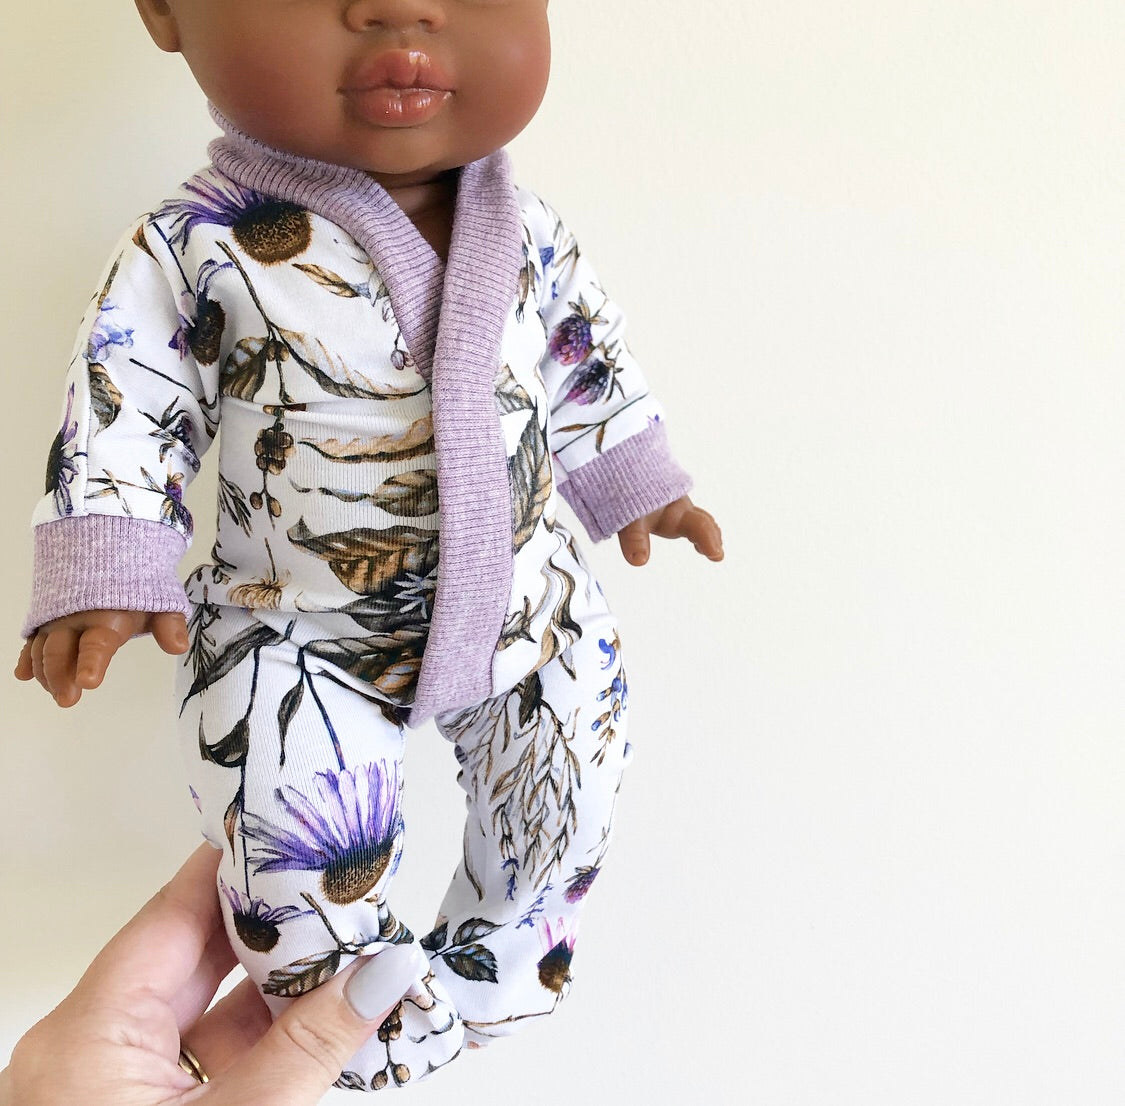 Ready to ship // Dolly Sleepsuit: To fit 38cm Miniland & Minikane/Paola Reina (Available in multiple fabrics)